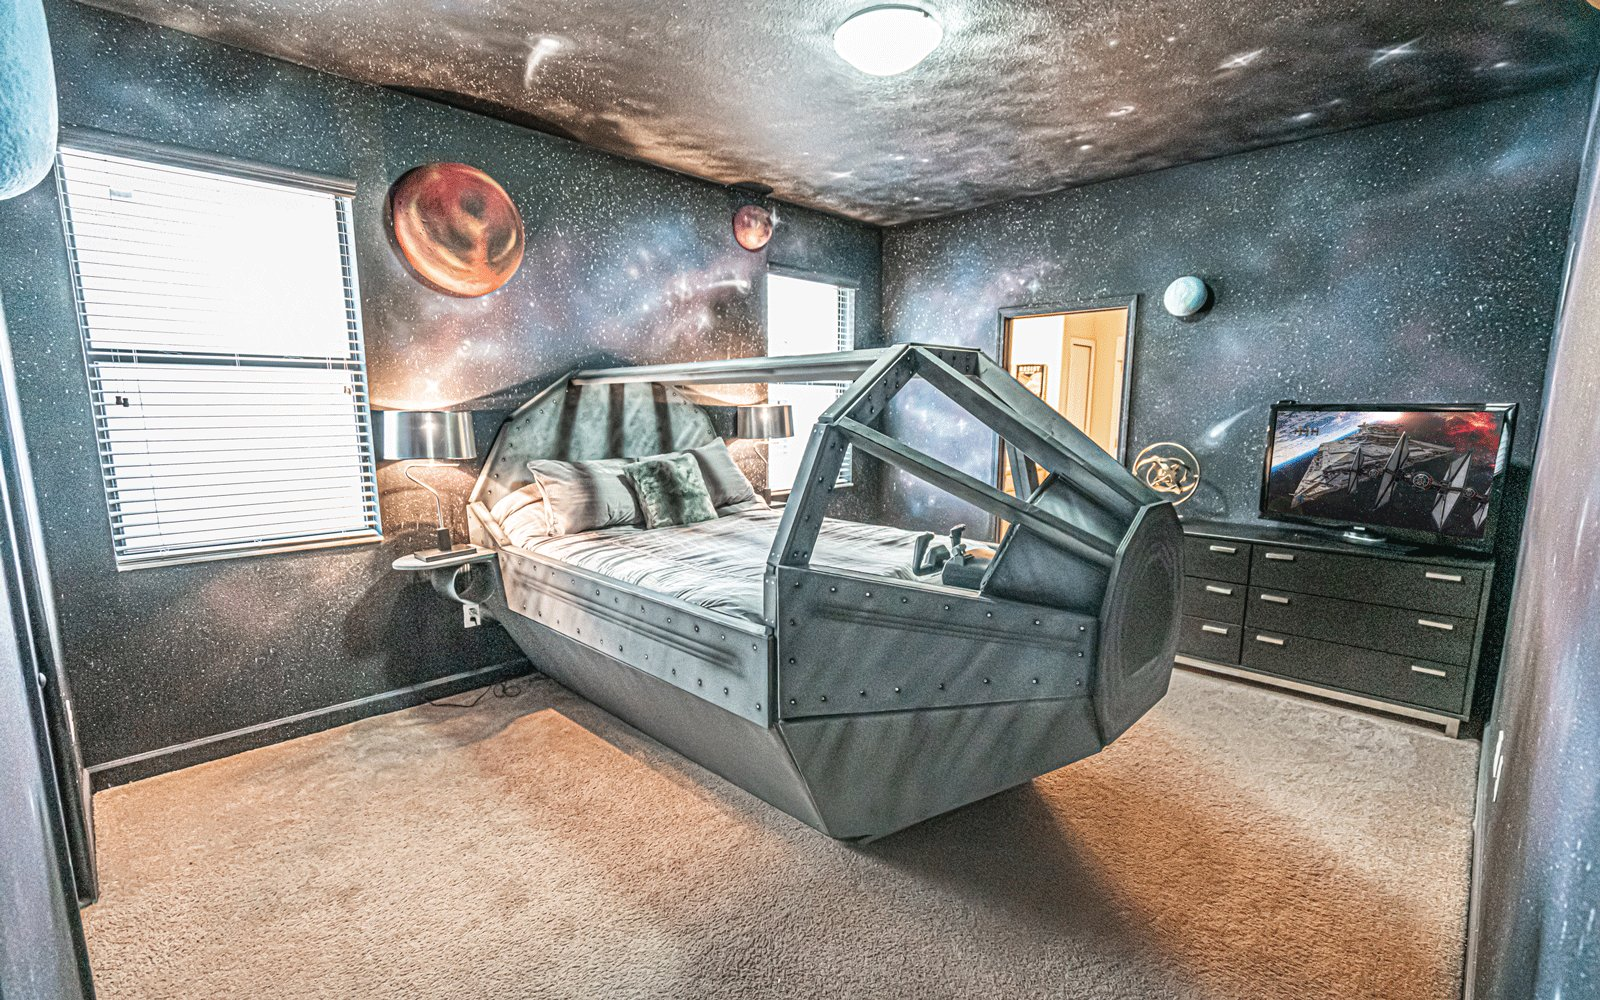 Star Wars airbnb from Loma Homes